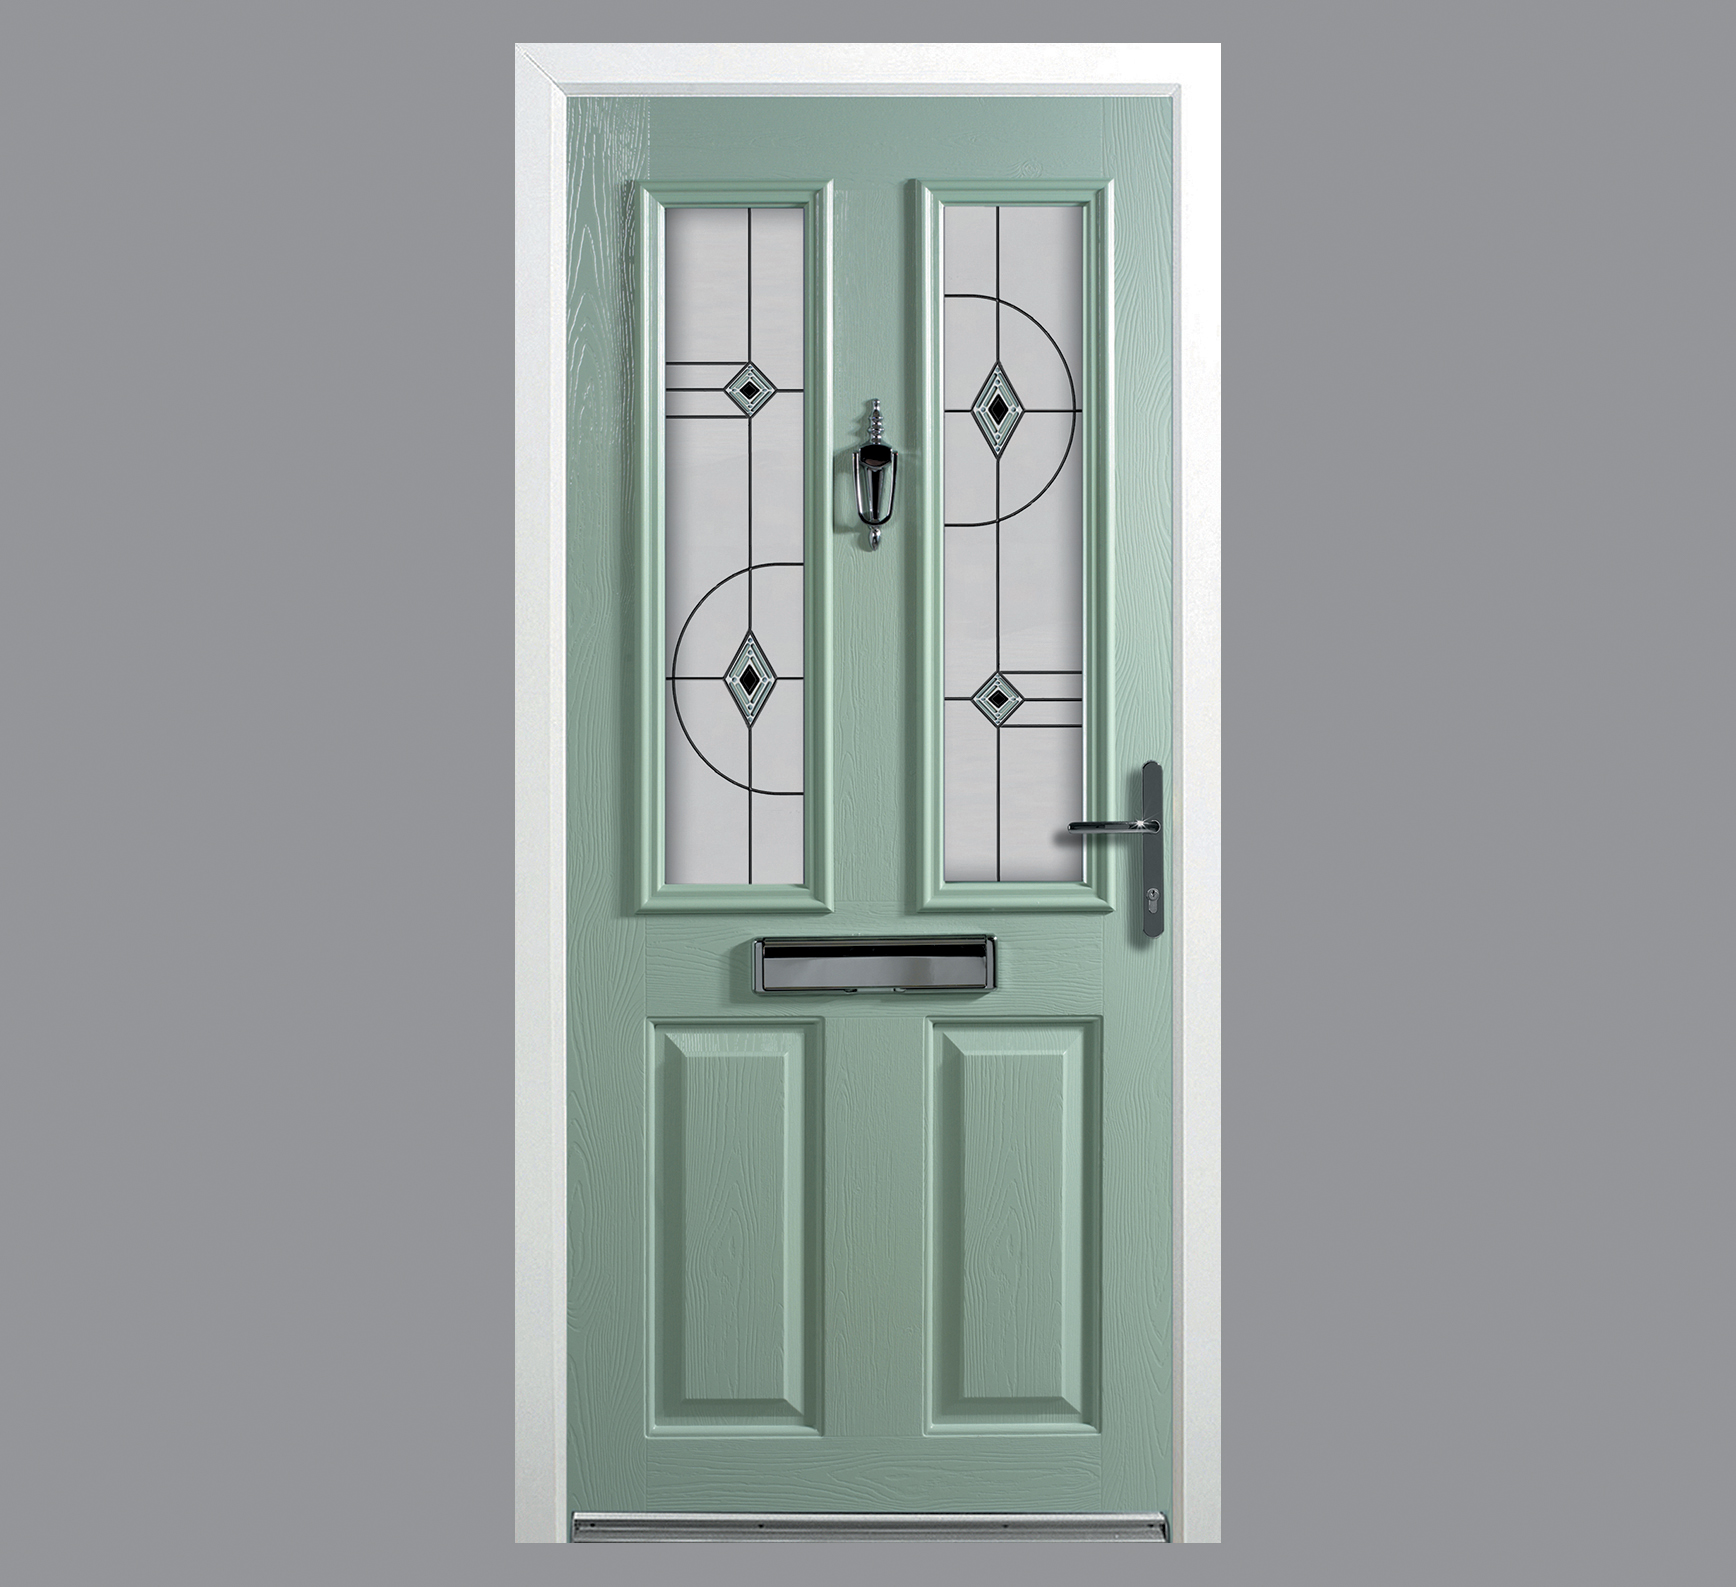 http://www.dualaspectglass.com/wp-content/uploads/2014/04/bFoley-Green-Door-shown-with-Abstract-colour-match-glass.jpg